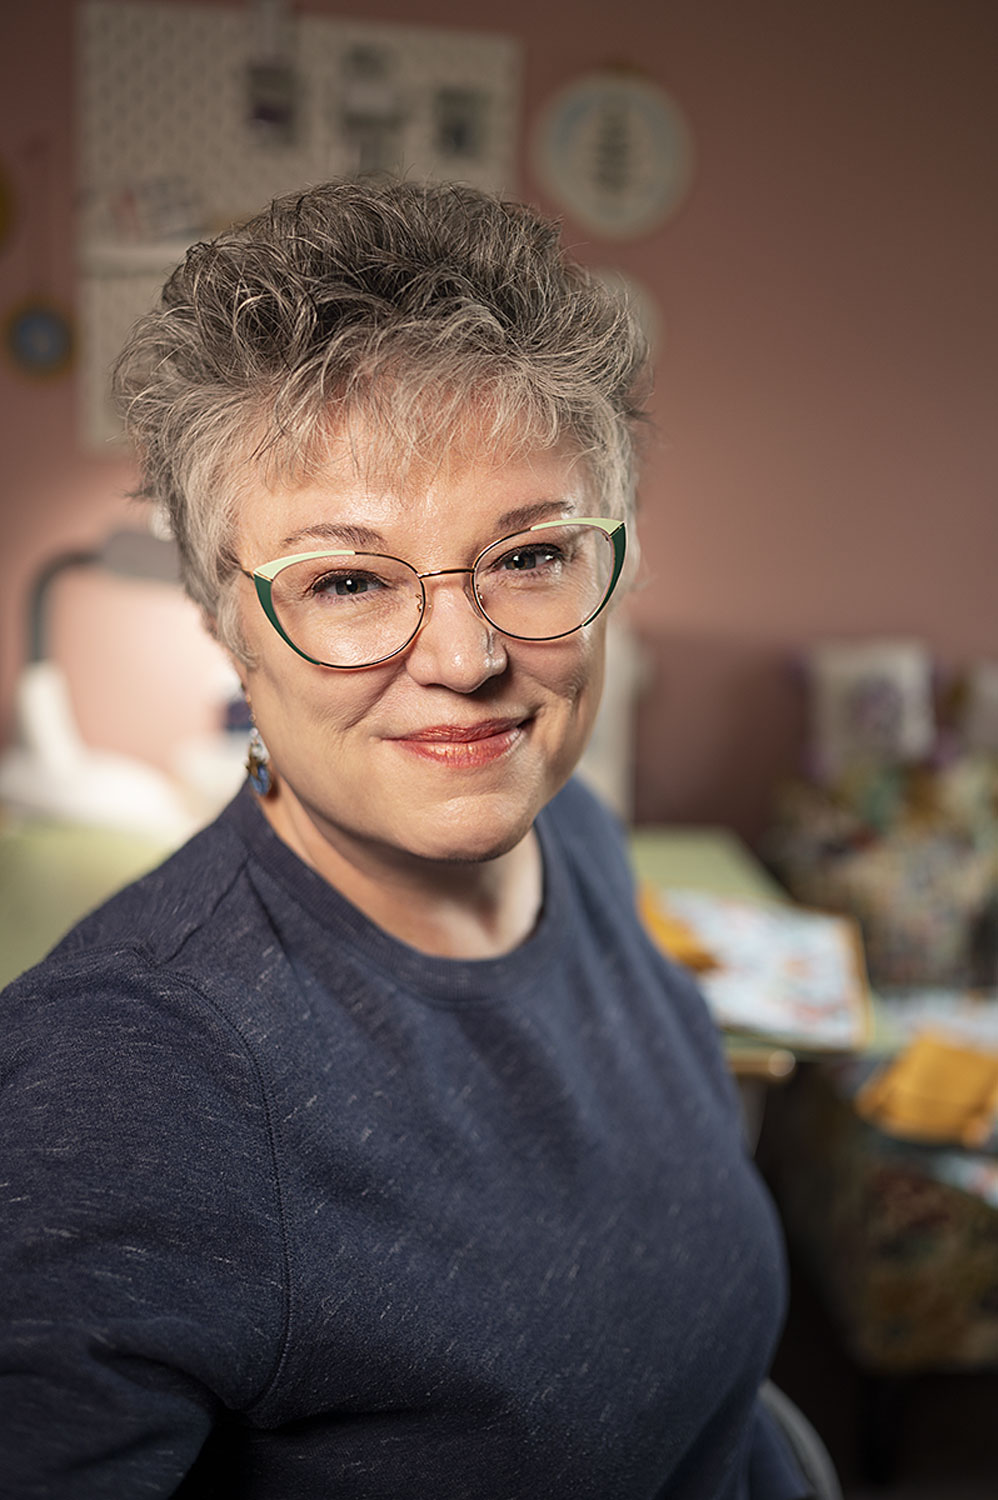 Smiling woman in a sewing room